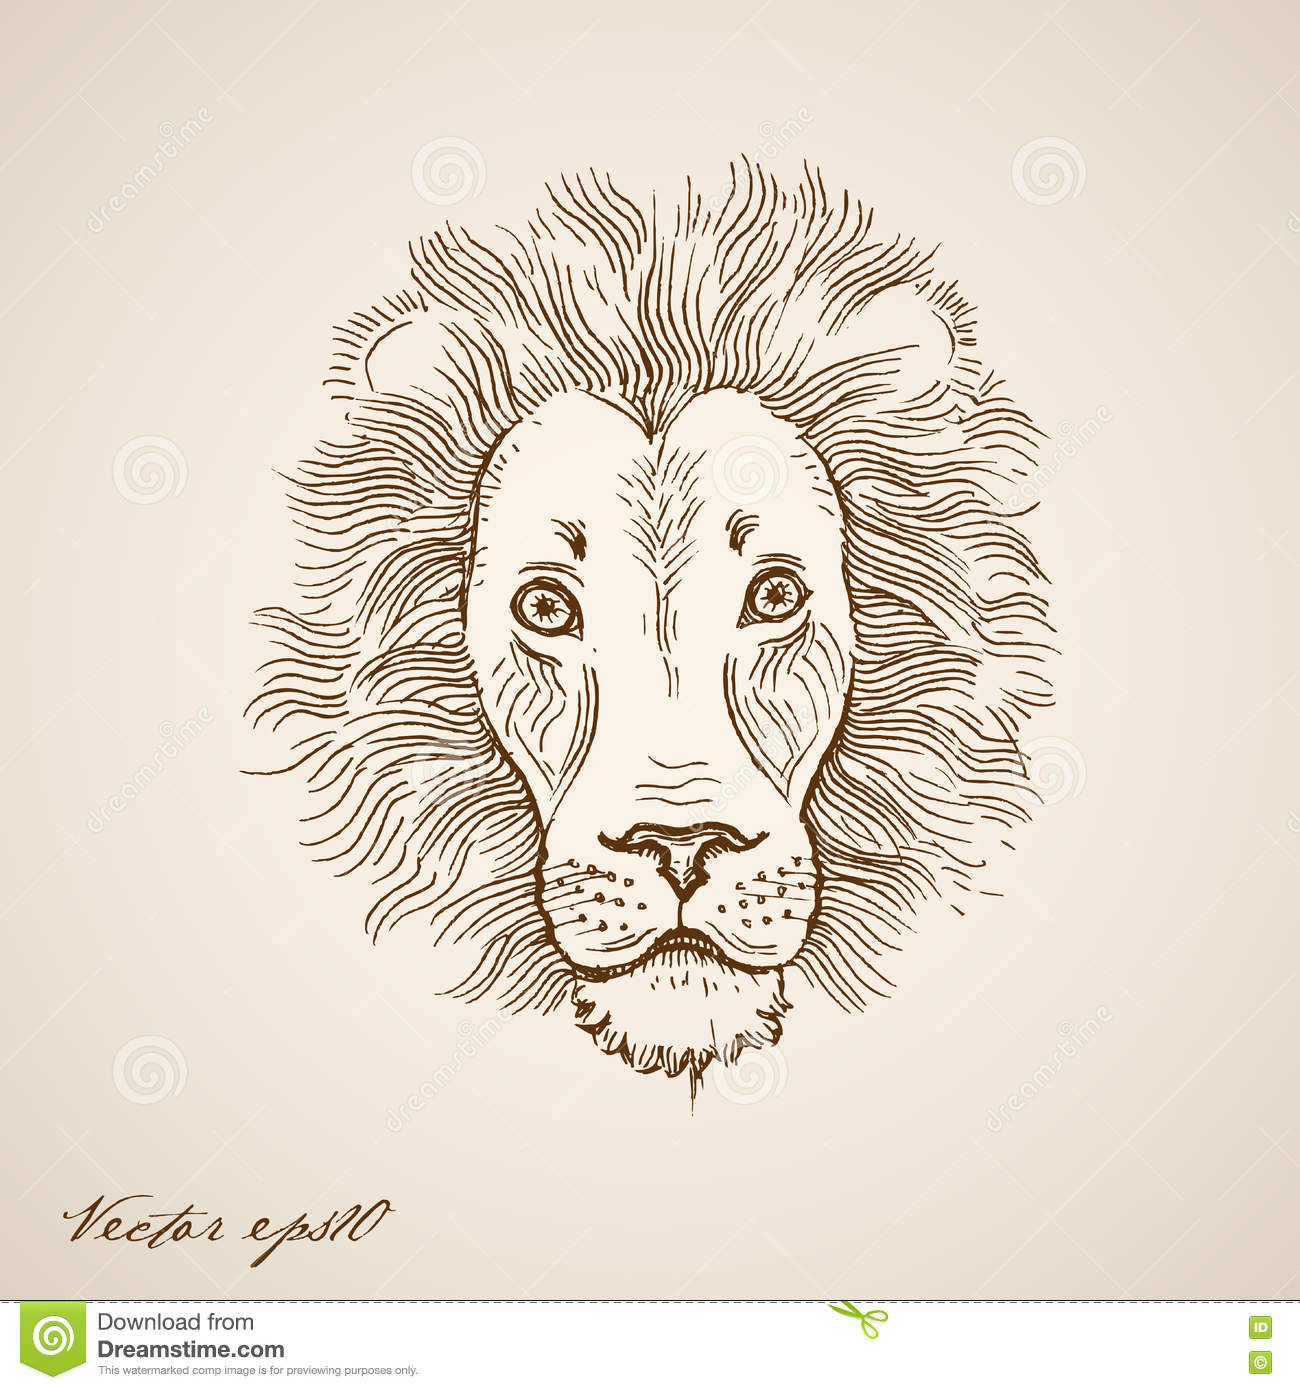 Engraving vintage hand drawn vector lion doodle collage pencil sketch wildlife zoo animal illustration